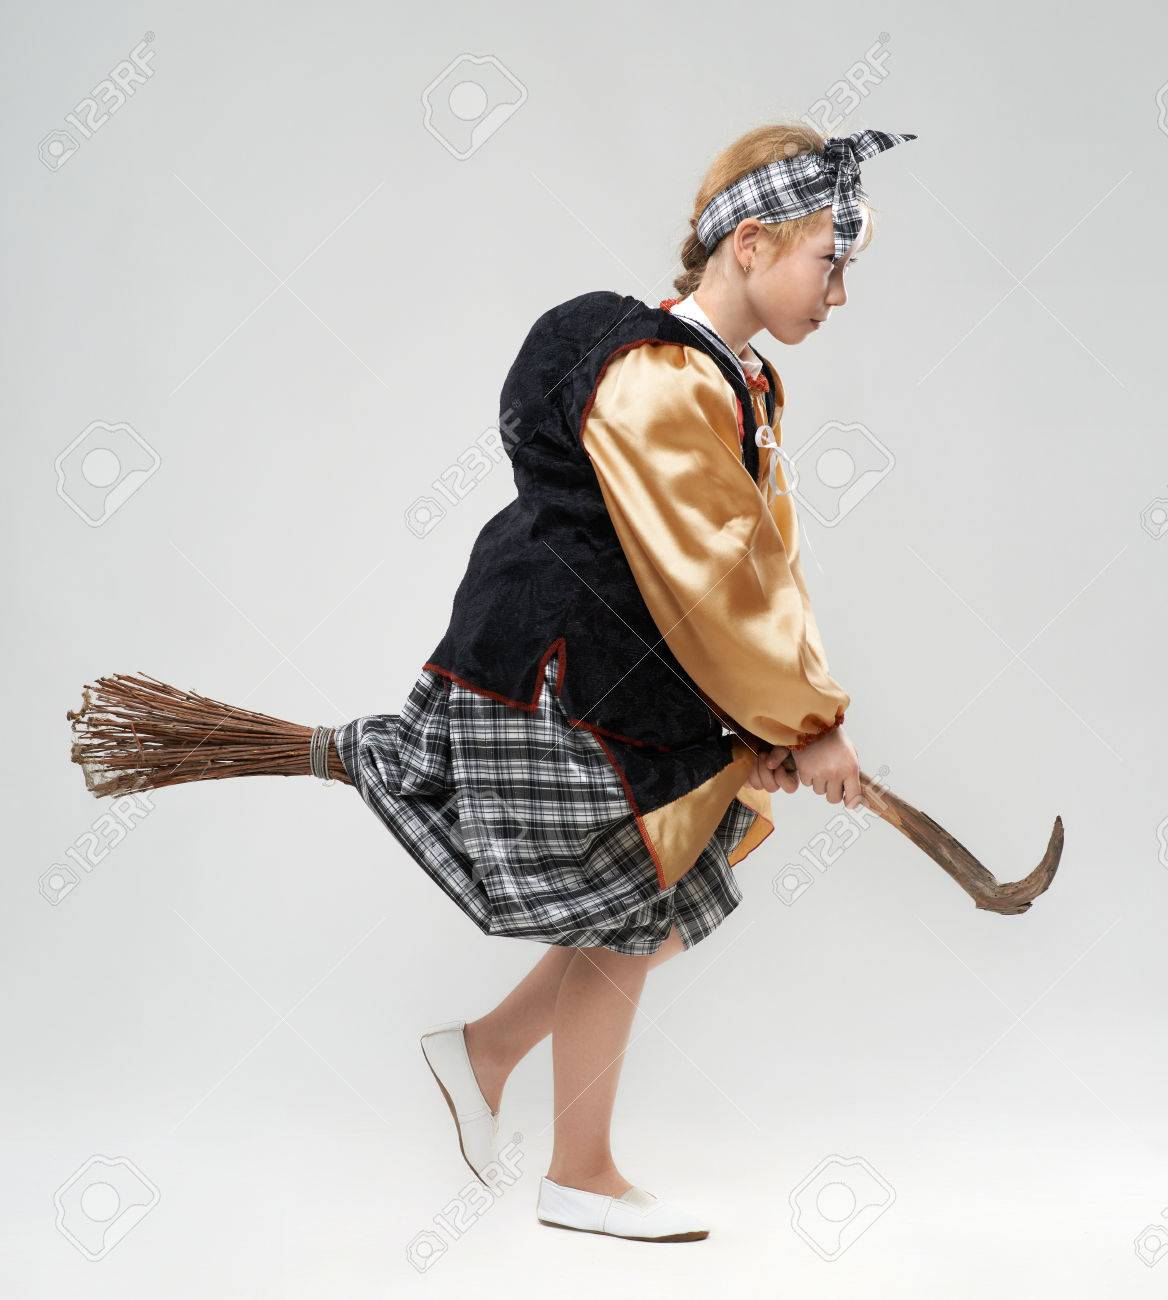 Funny Redhead Girl In Witch Costume Flying On A Broomstick Stock ...